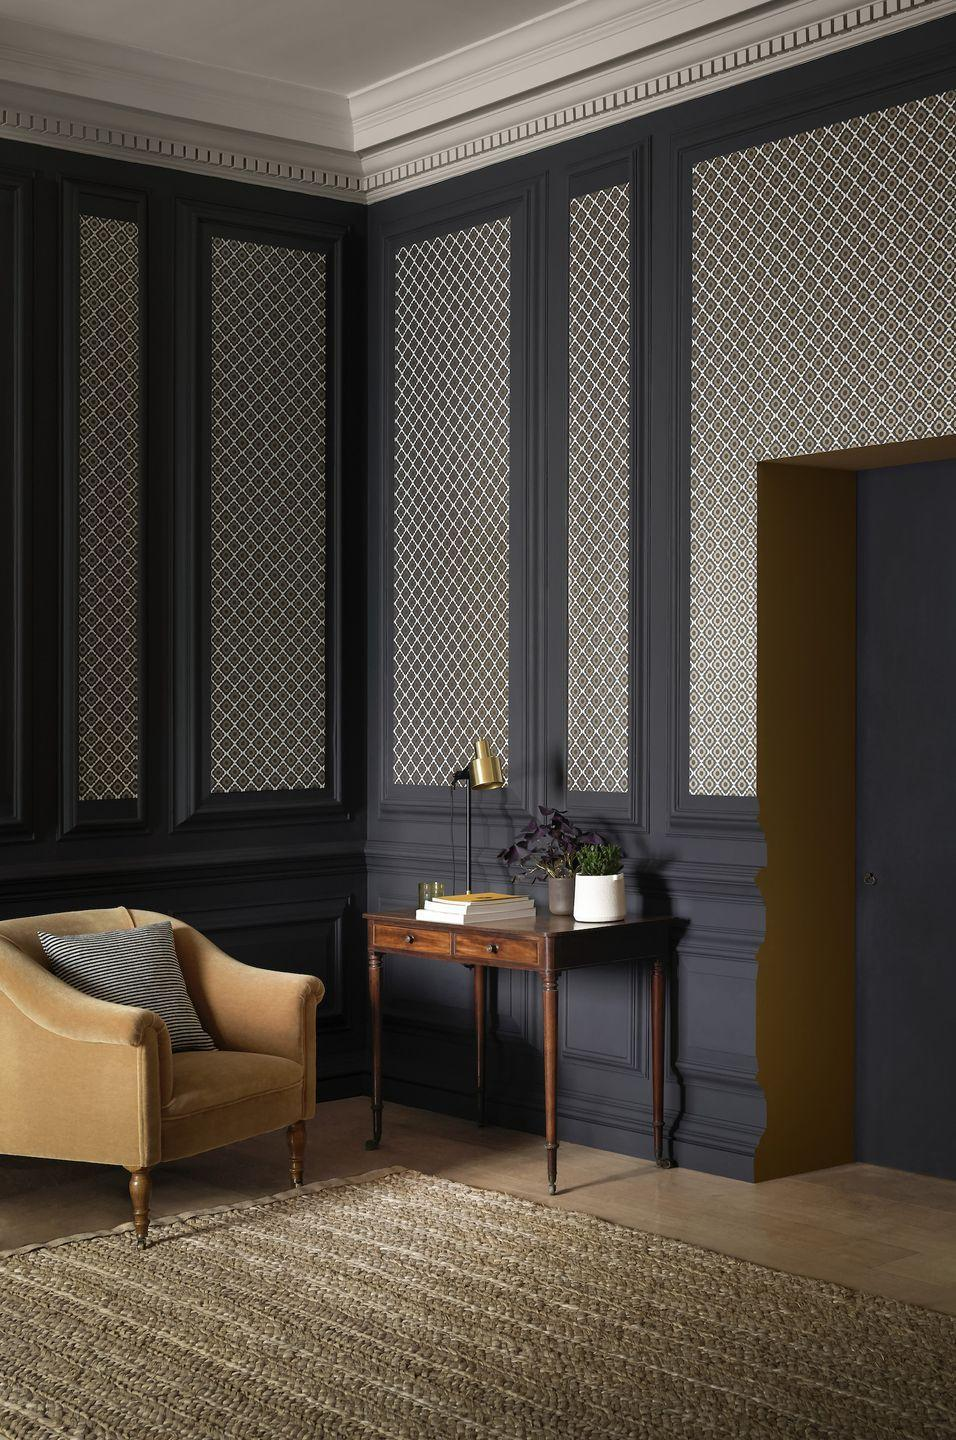 """<p>Create interest with wallpaper panels. This all over lattice design works perfectly against the dark grey; it's a subtle pattern and not too big but it stands out. The design is reminiscent of tiles and has a touch of Morocco about it.</p><p>Top Tip: This living room wallpaper idea works particularly well tall ceilings.</p><p>Pictured: Quatrefoil Kohl wallpaper, <a href=""""https://www.paintandpaperlibrary.com/quatrefoil-kohl"""" rel=""""nofollow noopener"""" target=""""_blank"""" data-ylk=""""slk:Paper Library"""" class=""""link rapid-noclick-resp"""">Paper Library</a></p>"""